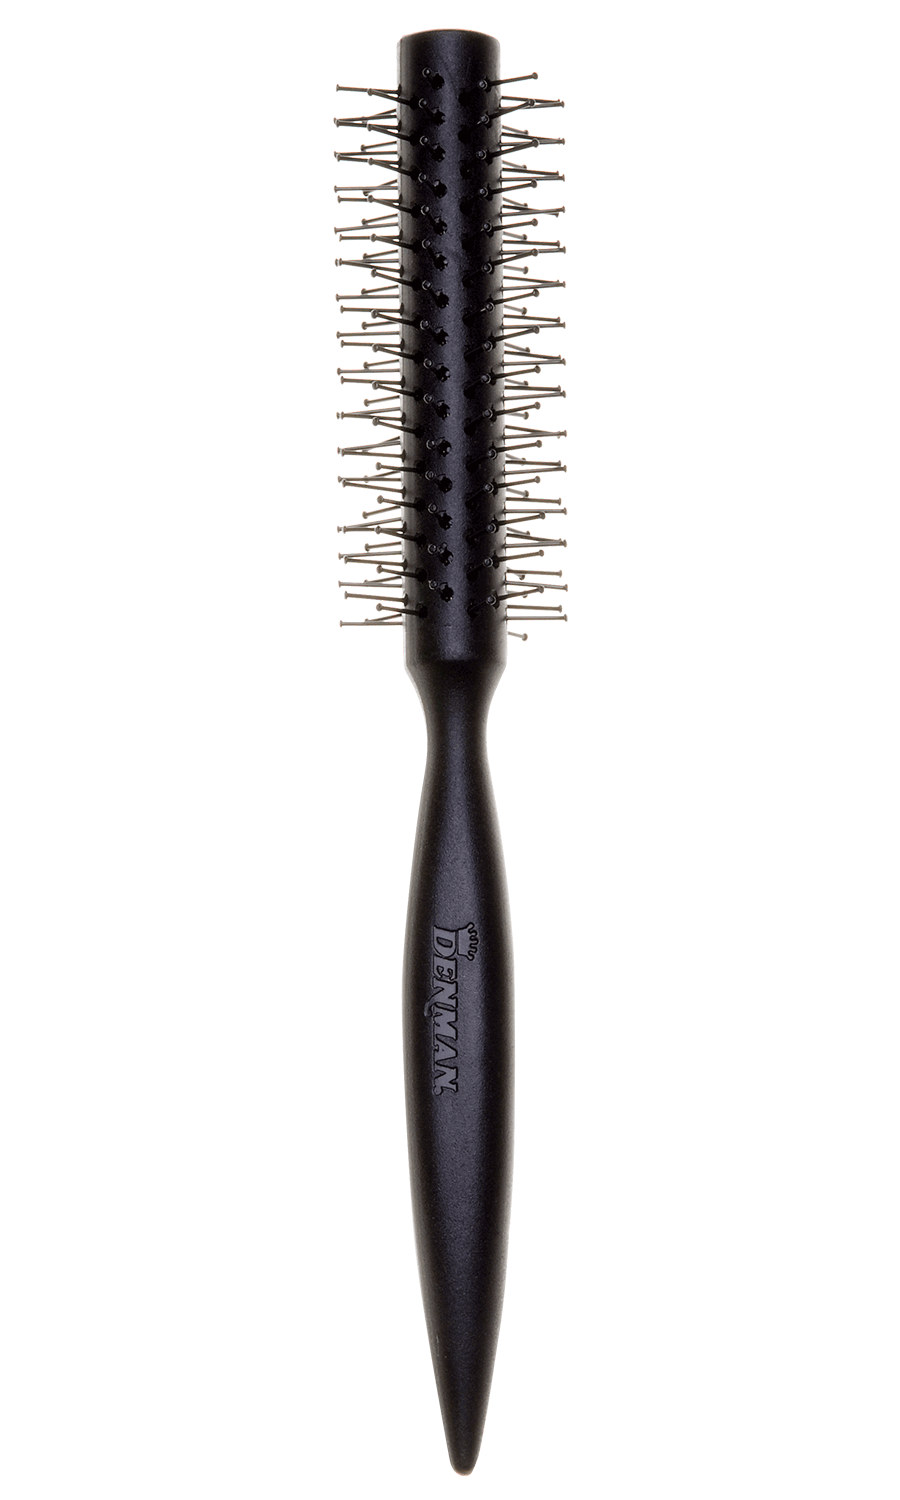 D73 Gentle Curling Brush